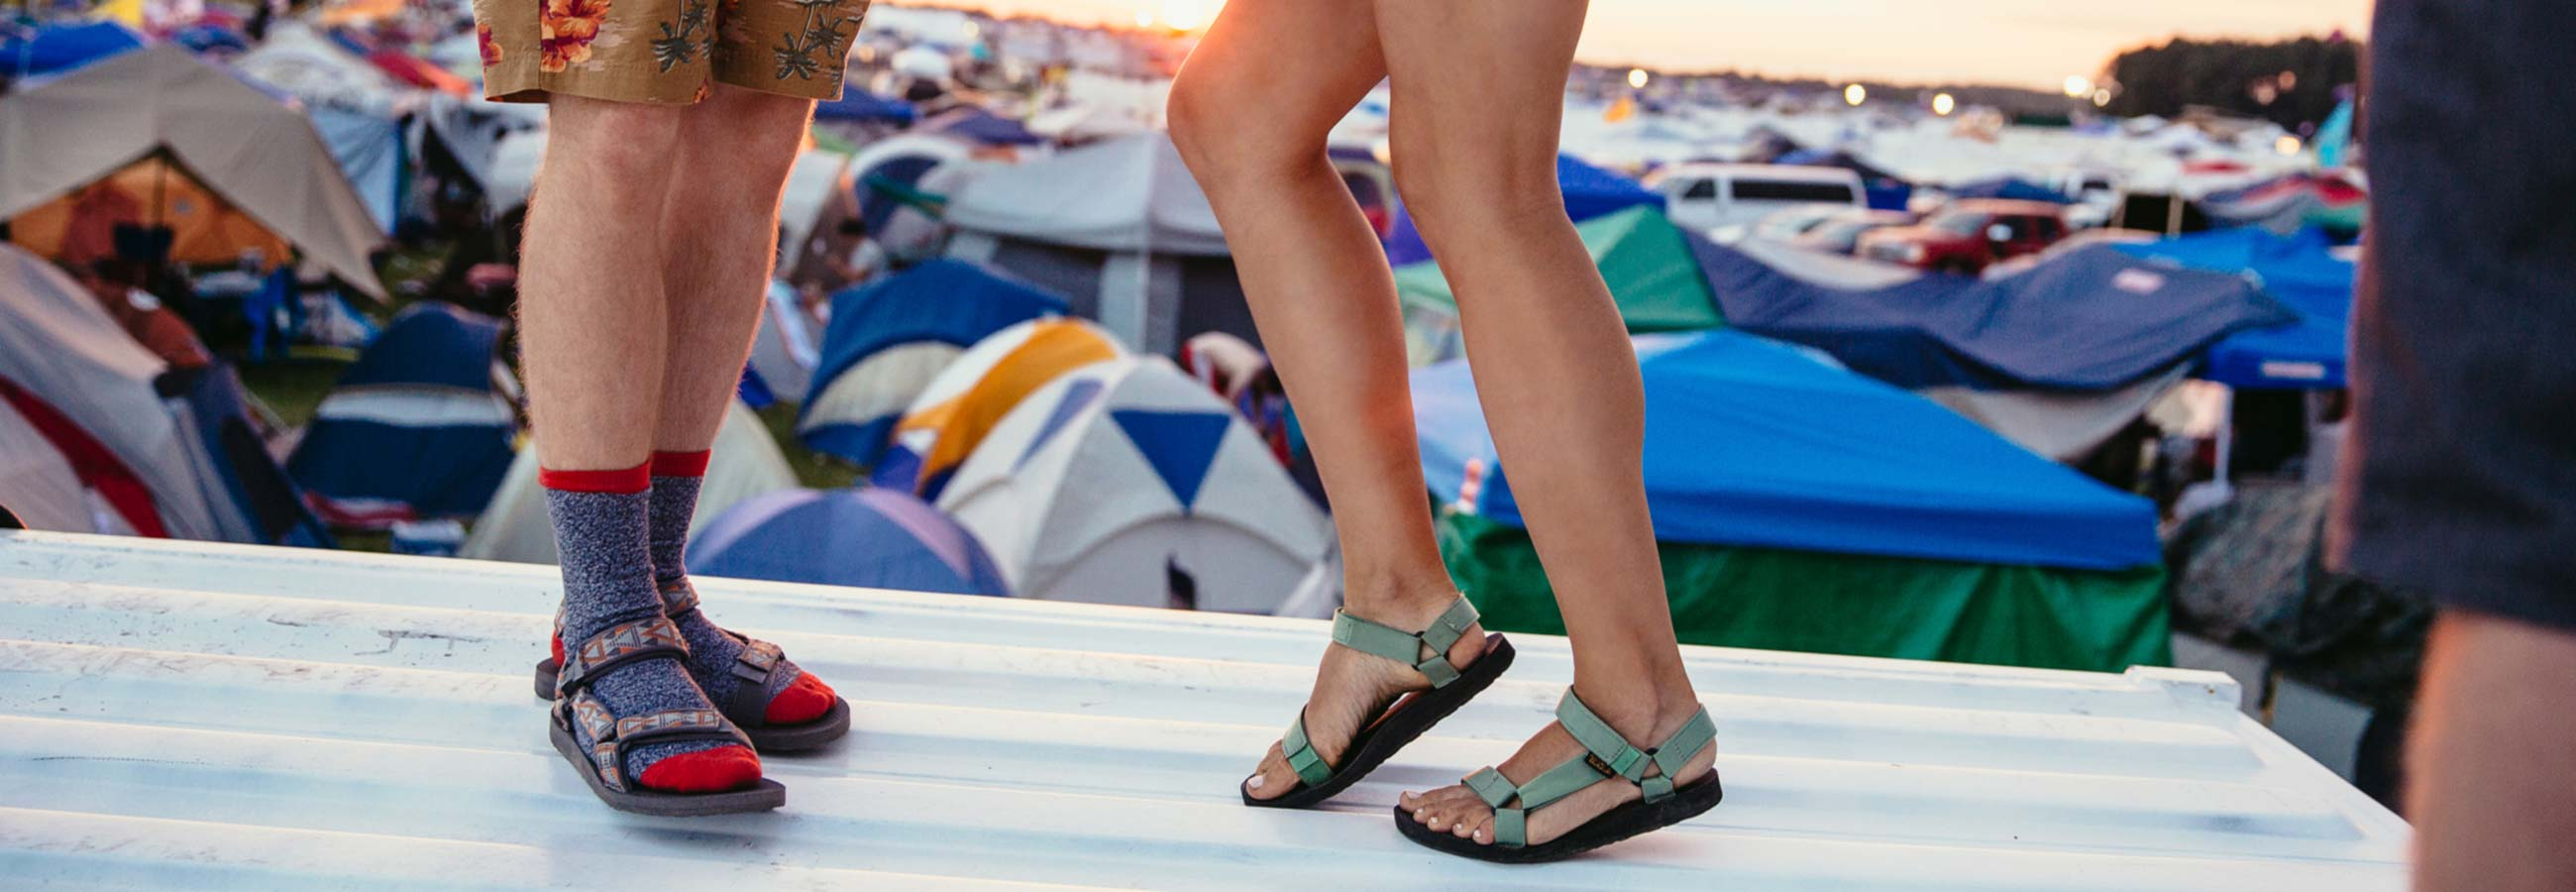 Two pairs of Teva-clad feet dancing on a platform overlooking a sea of tents.